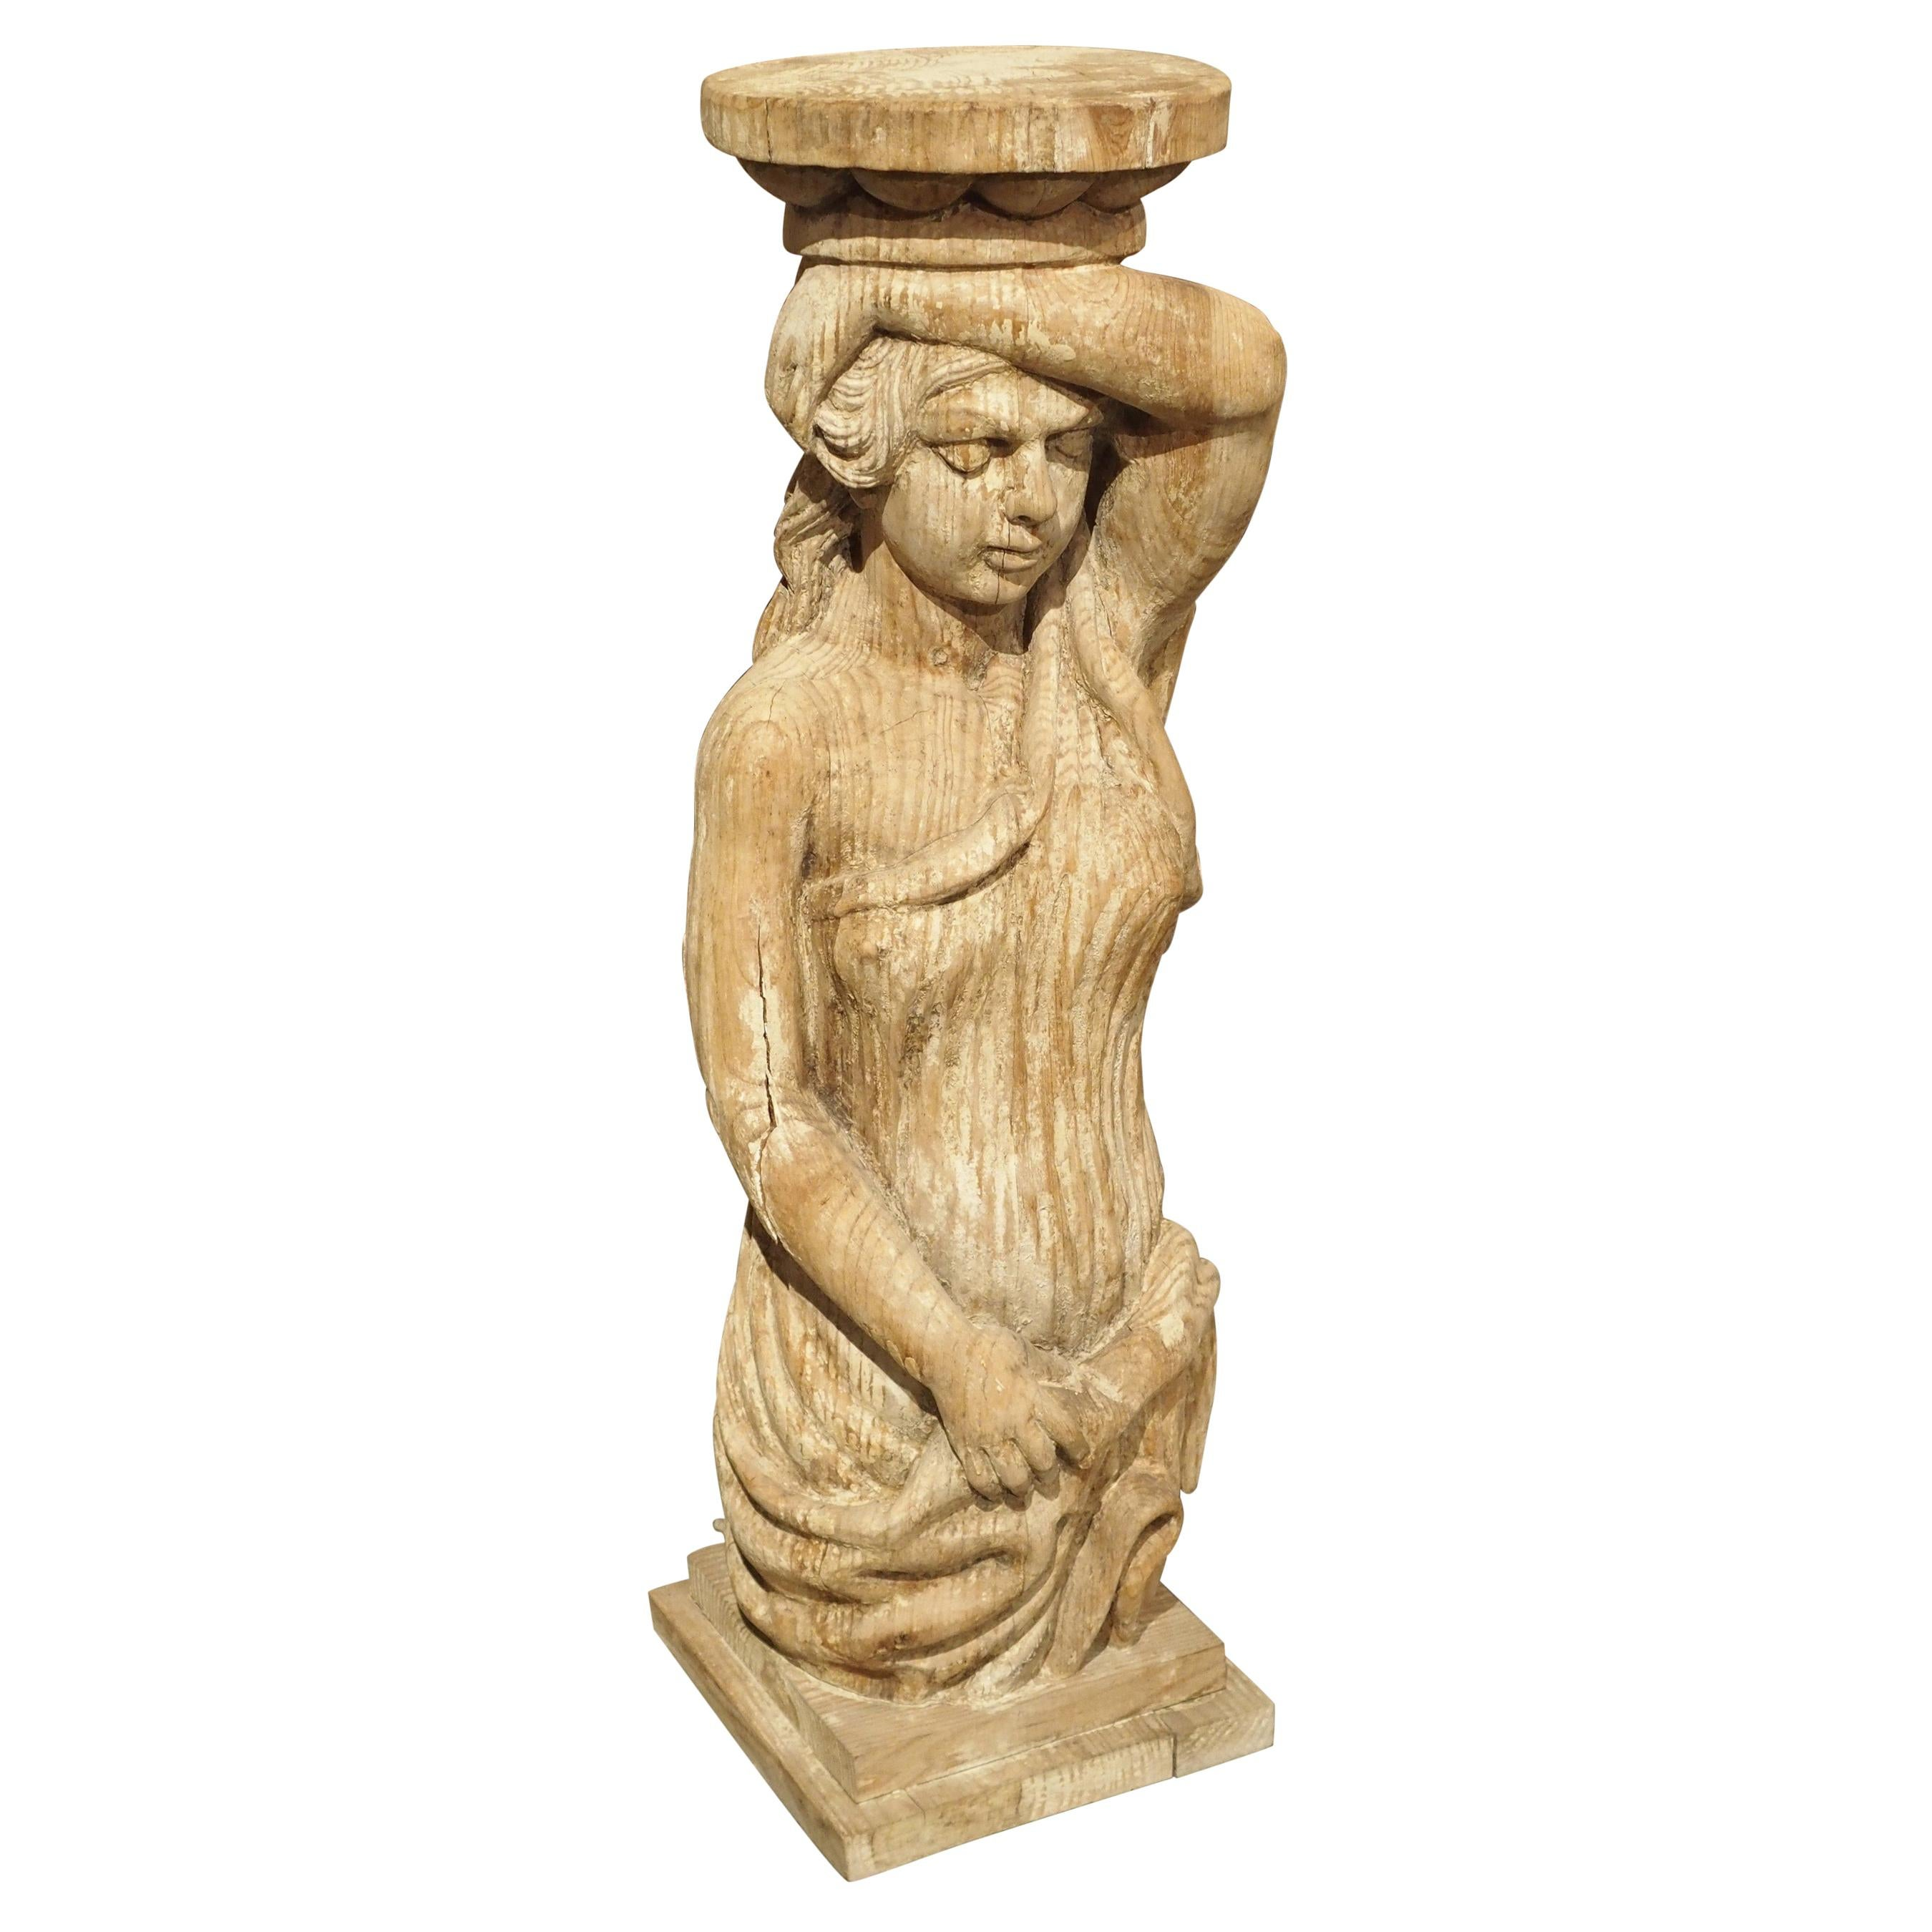 Carved Caryatid Statue or Pedestal, Early 20th Century